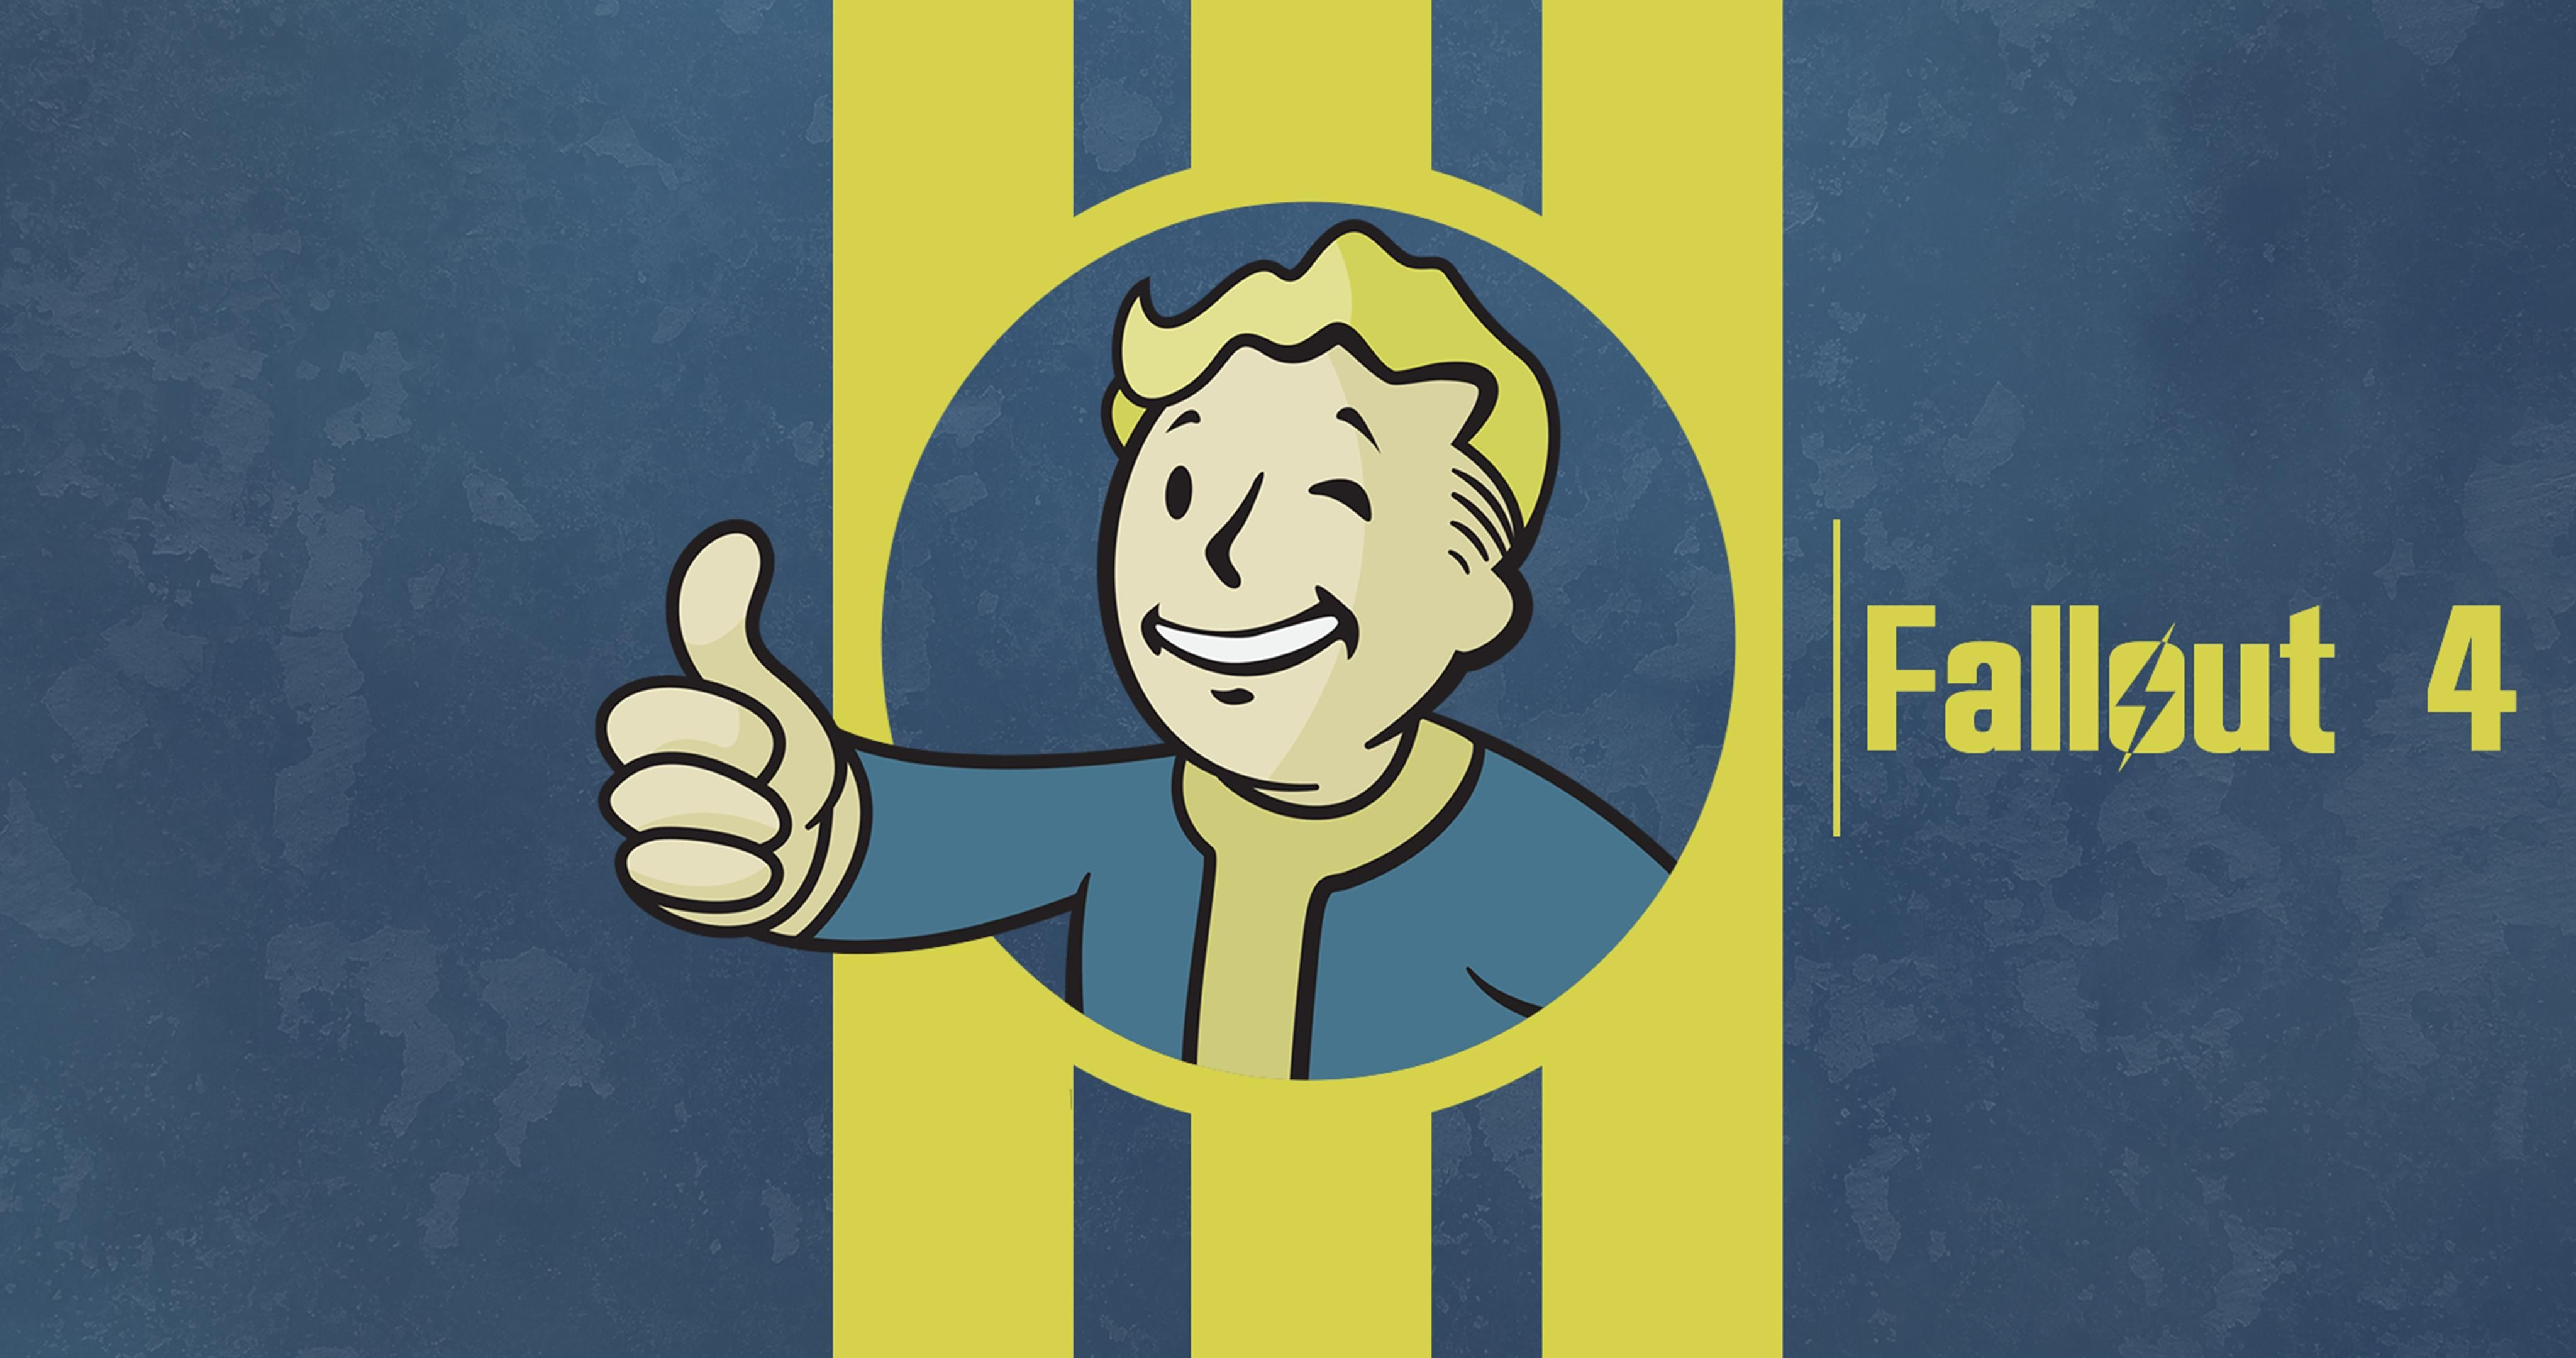 4096x2160 Fallout 4 Vault Boy Wallpapers For Android Desktop